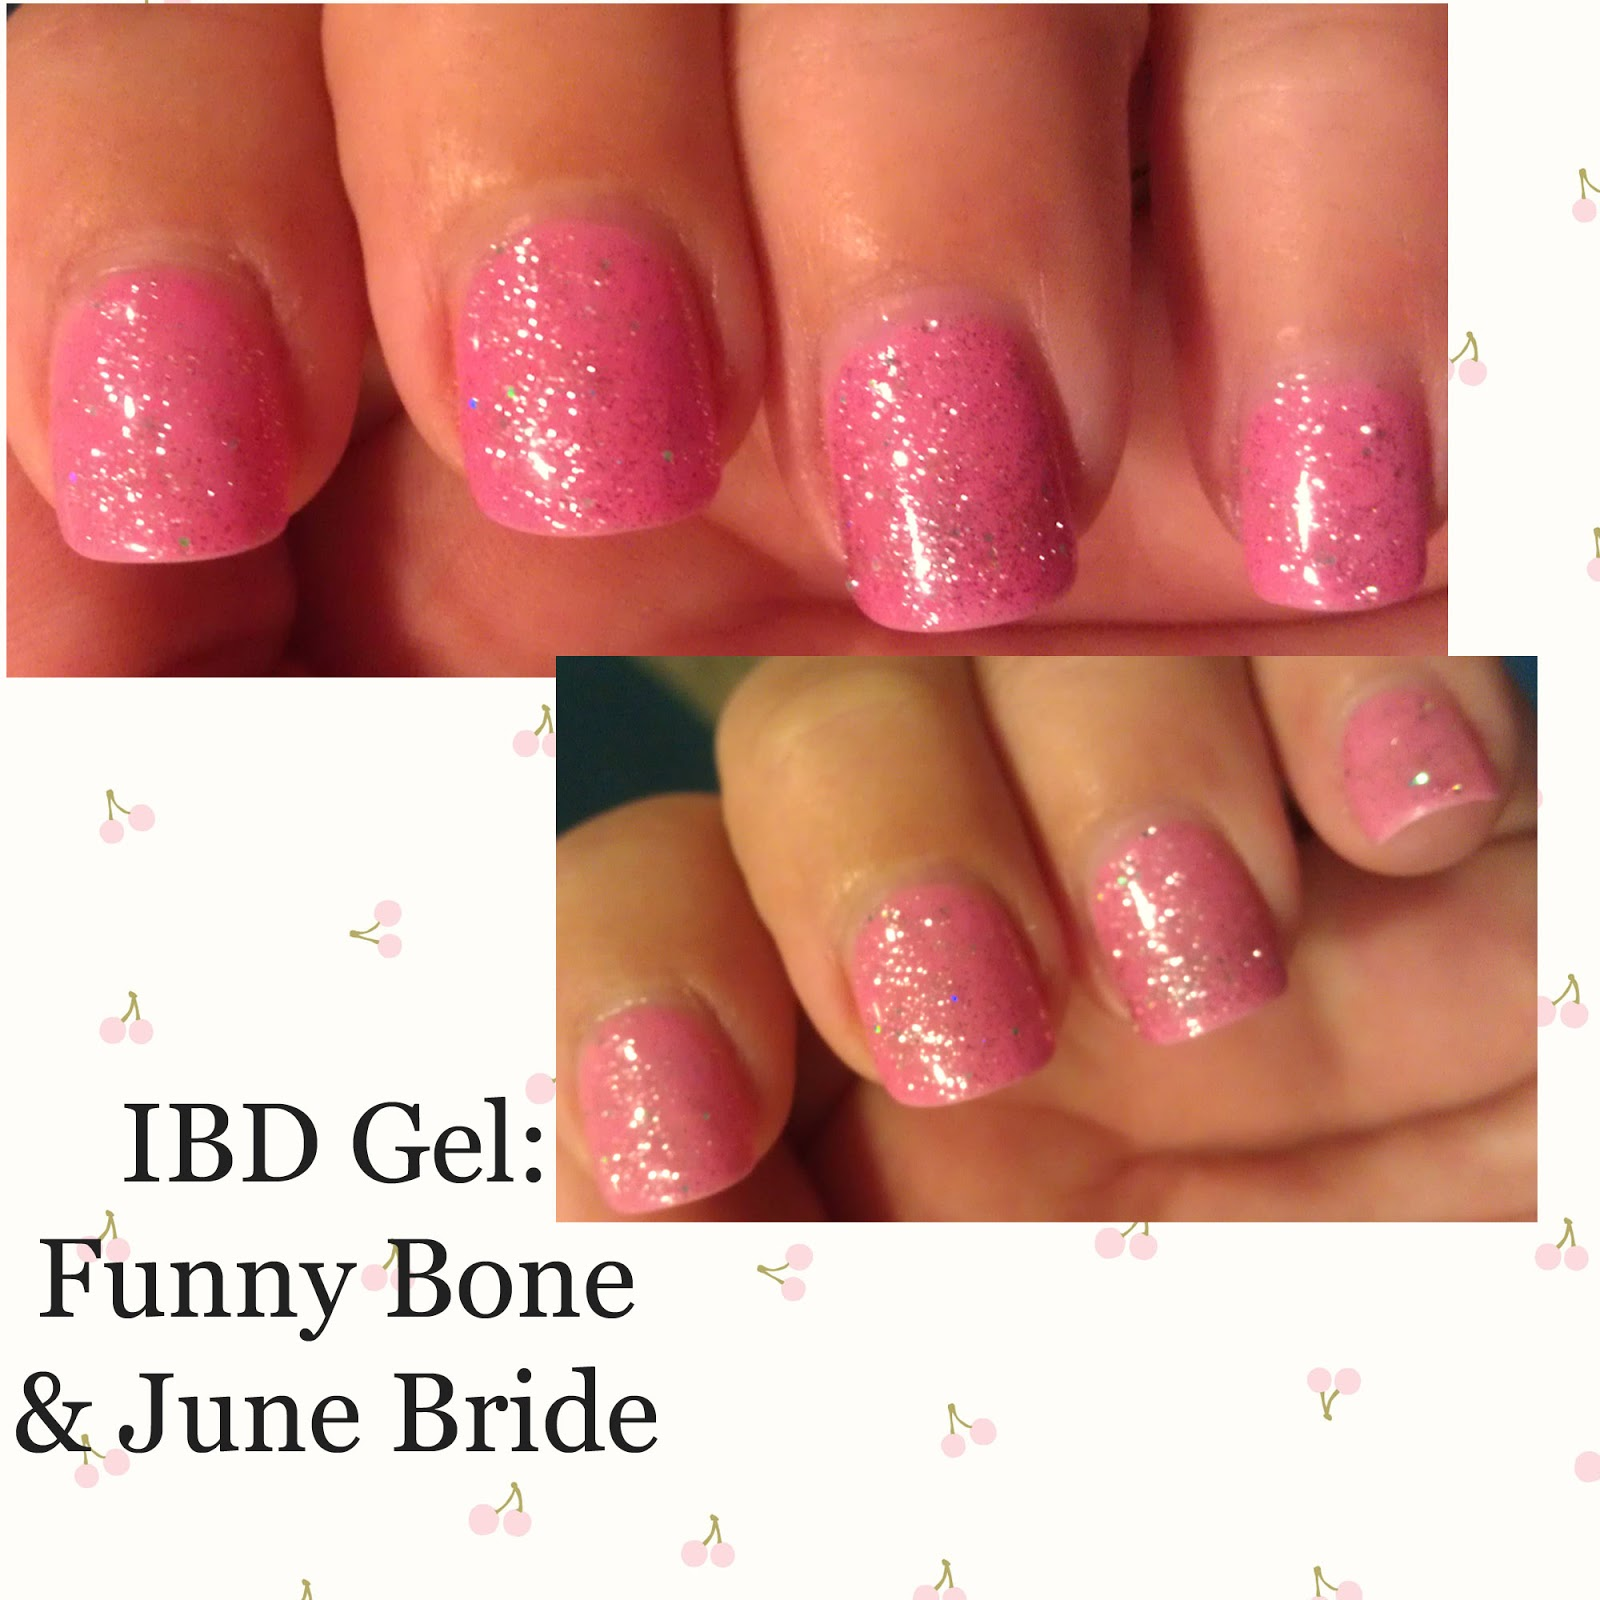 The Manicured Monkey: IBD: Funny Bone and June Bride (gels)